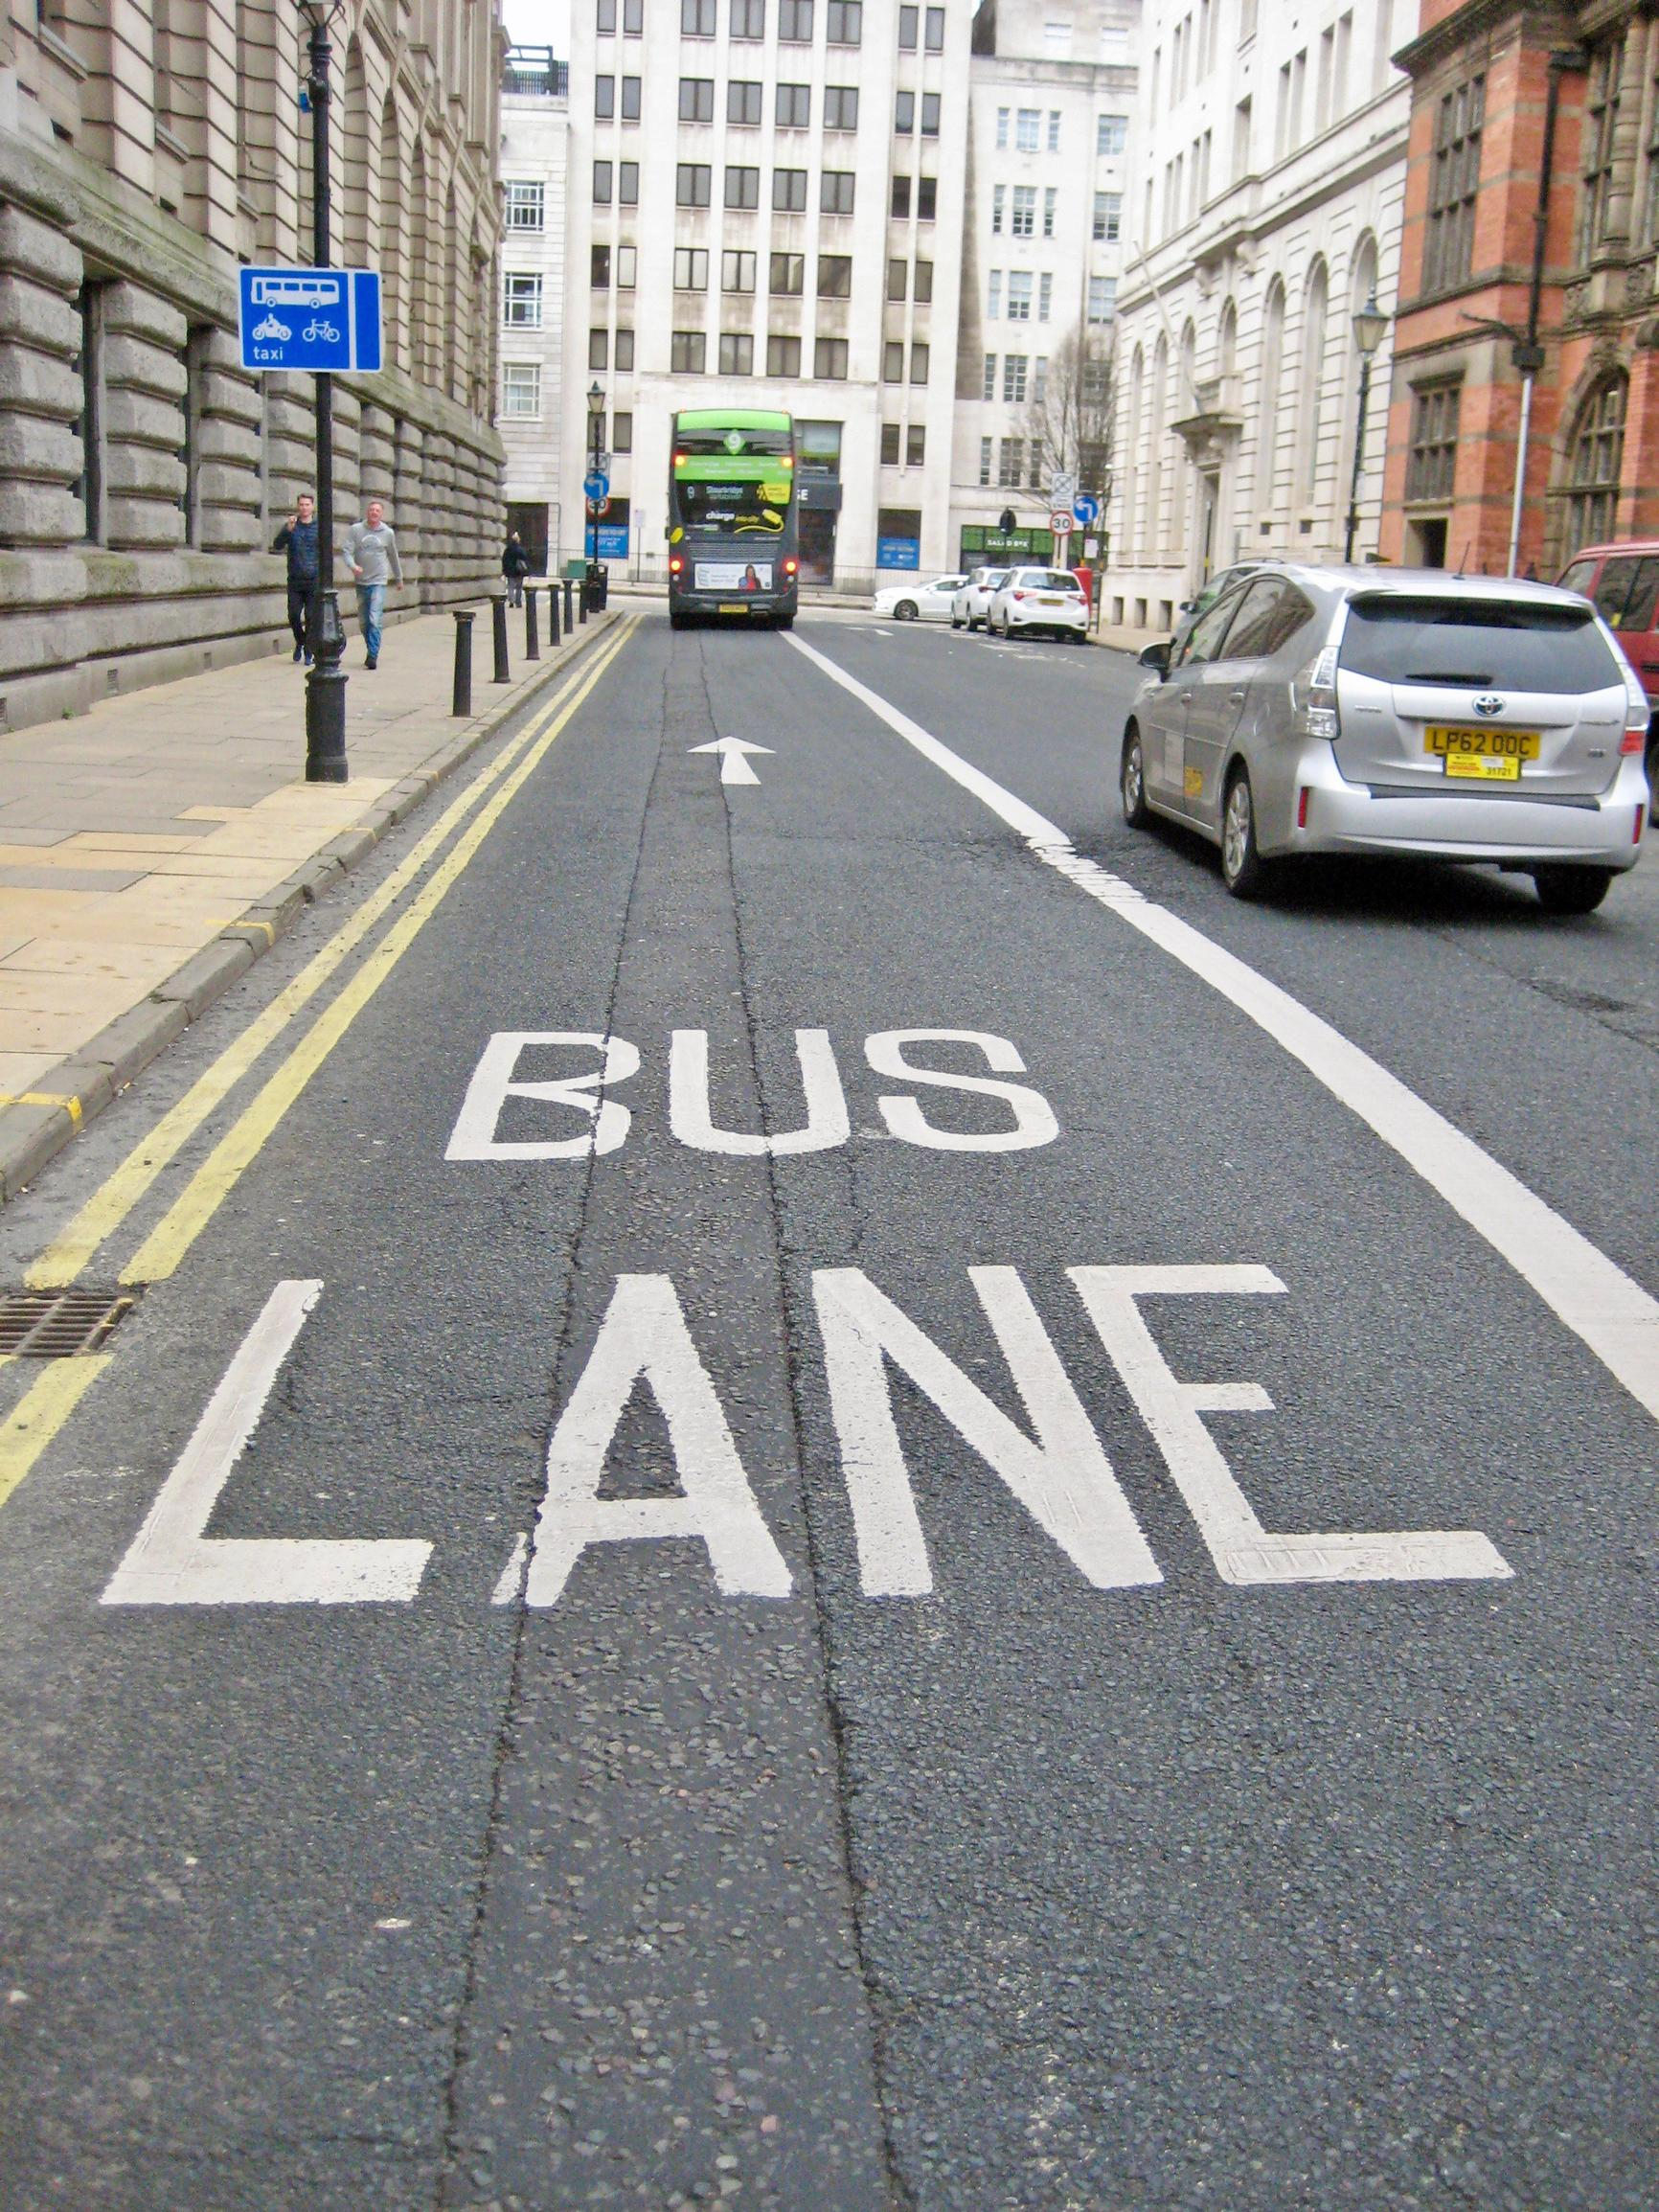 Bus lanes will be installed on the corridors